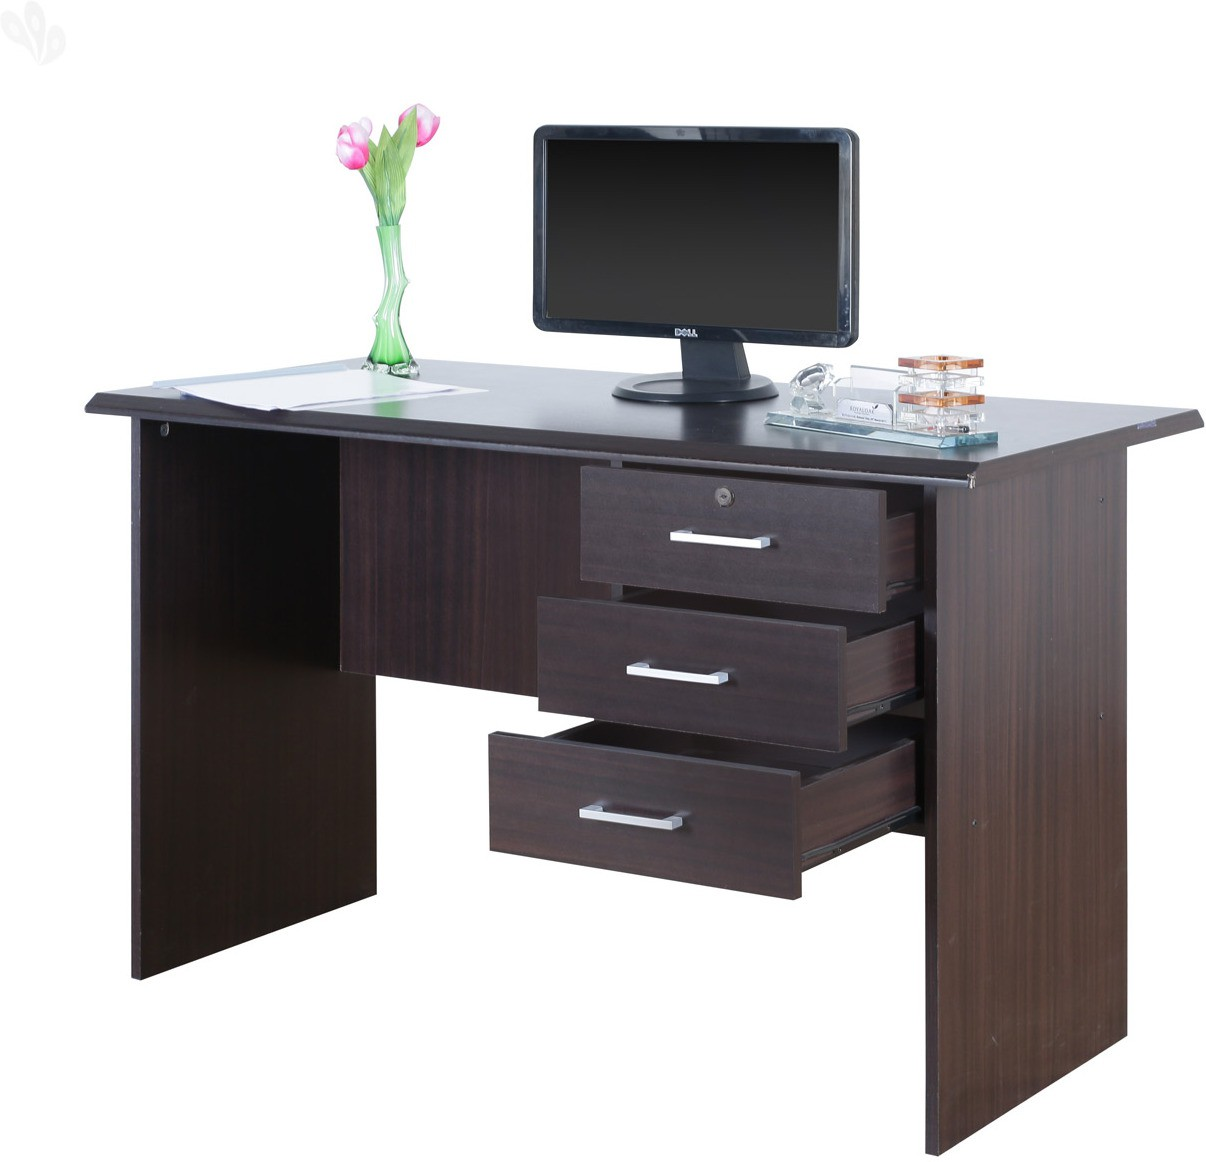 Royal Oak Bell Engineered Wood Office Table